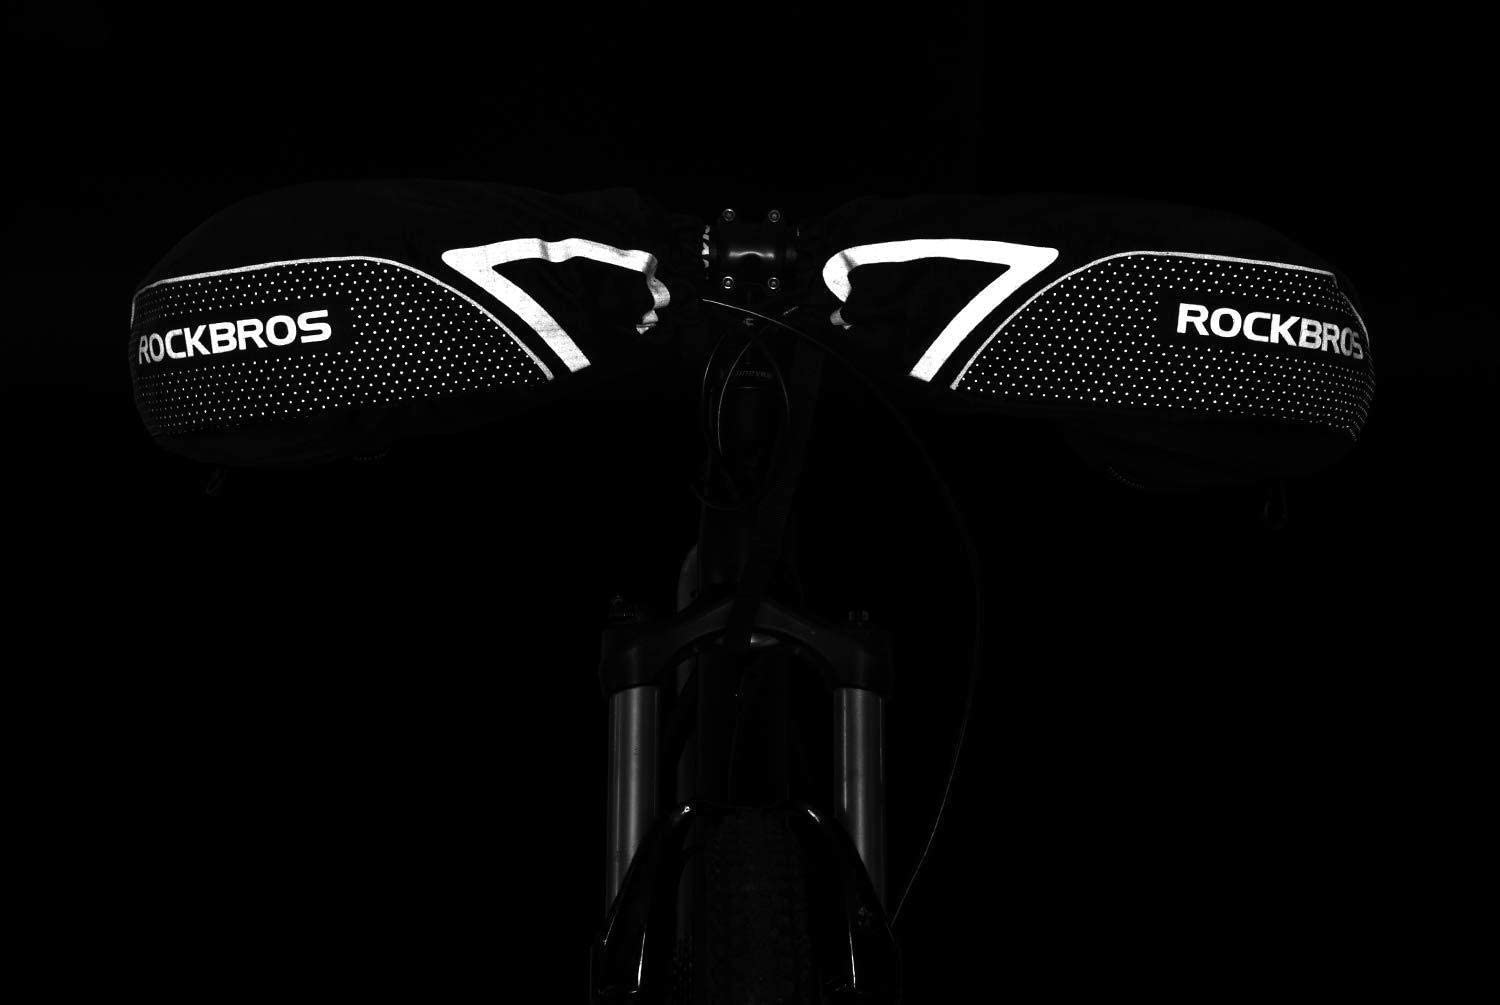 ROCKBROS Winter Gloves Cycling Motorcycle Handlebar Mittens Warmers Covers Black